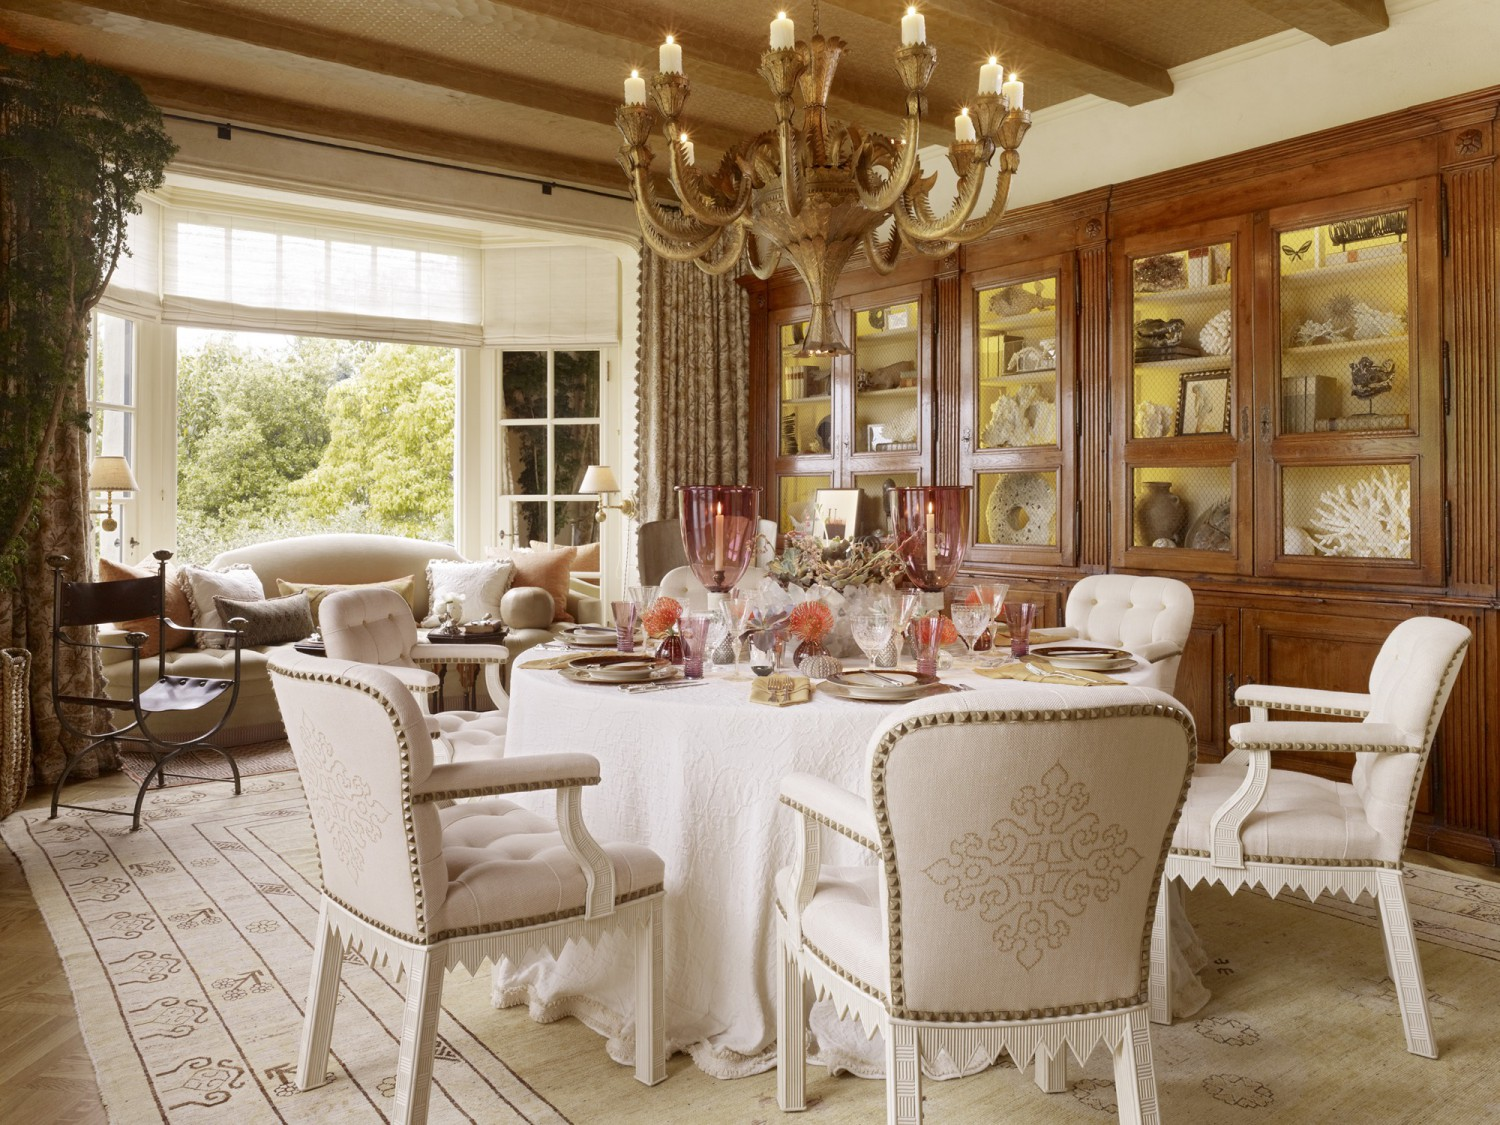 Showcase dining room tucker marks design - Dining room showcase designs ...